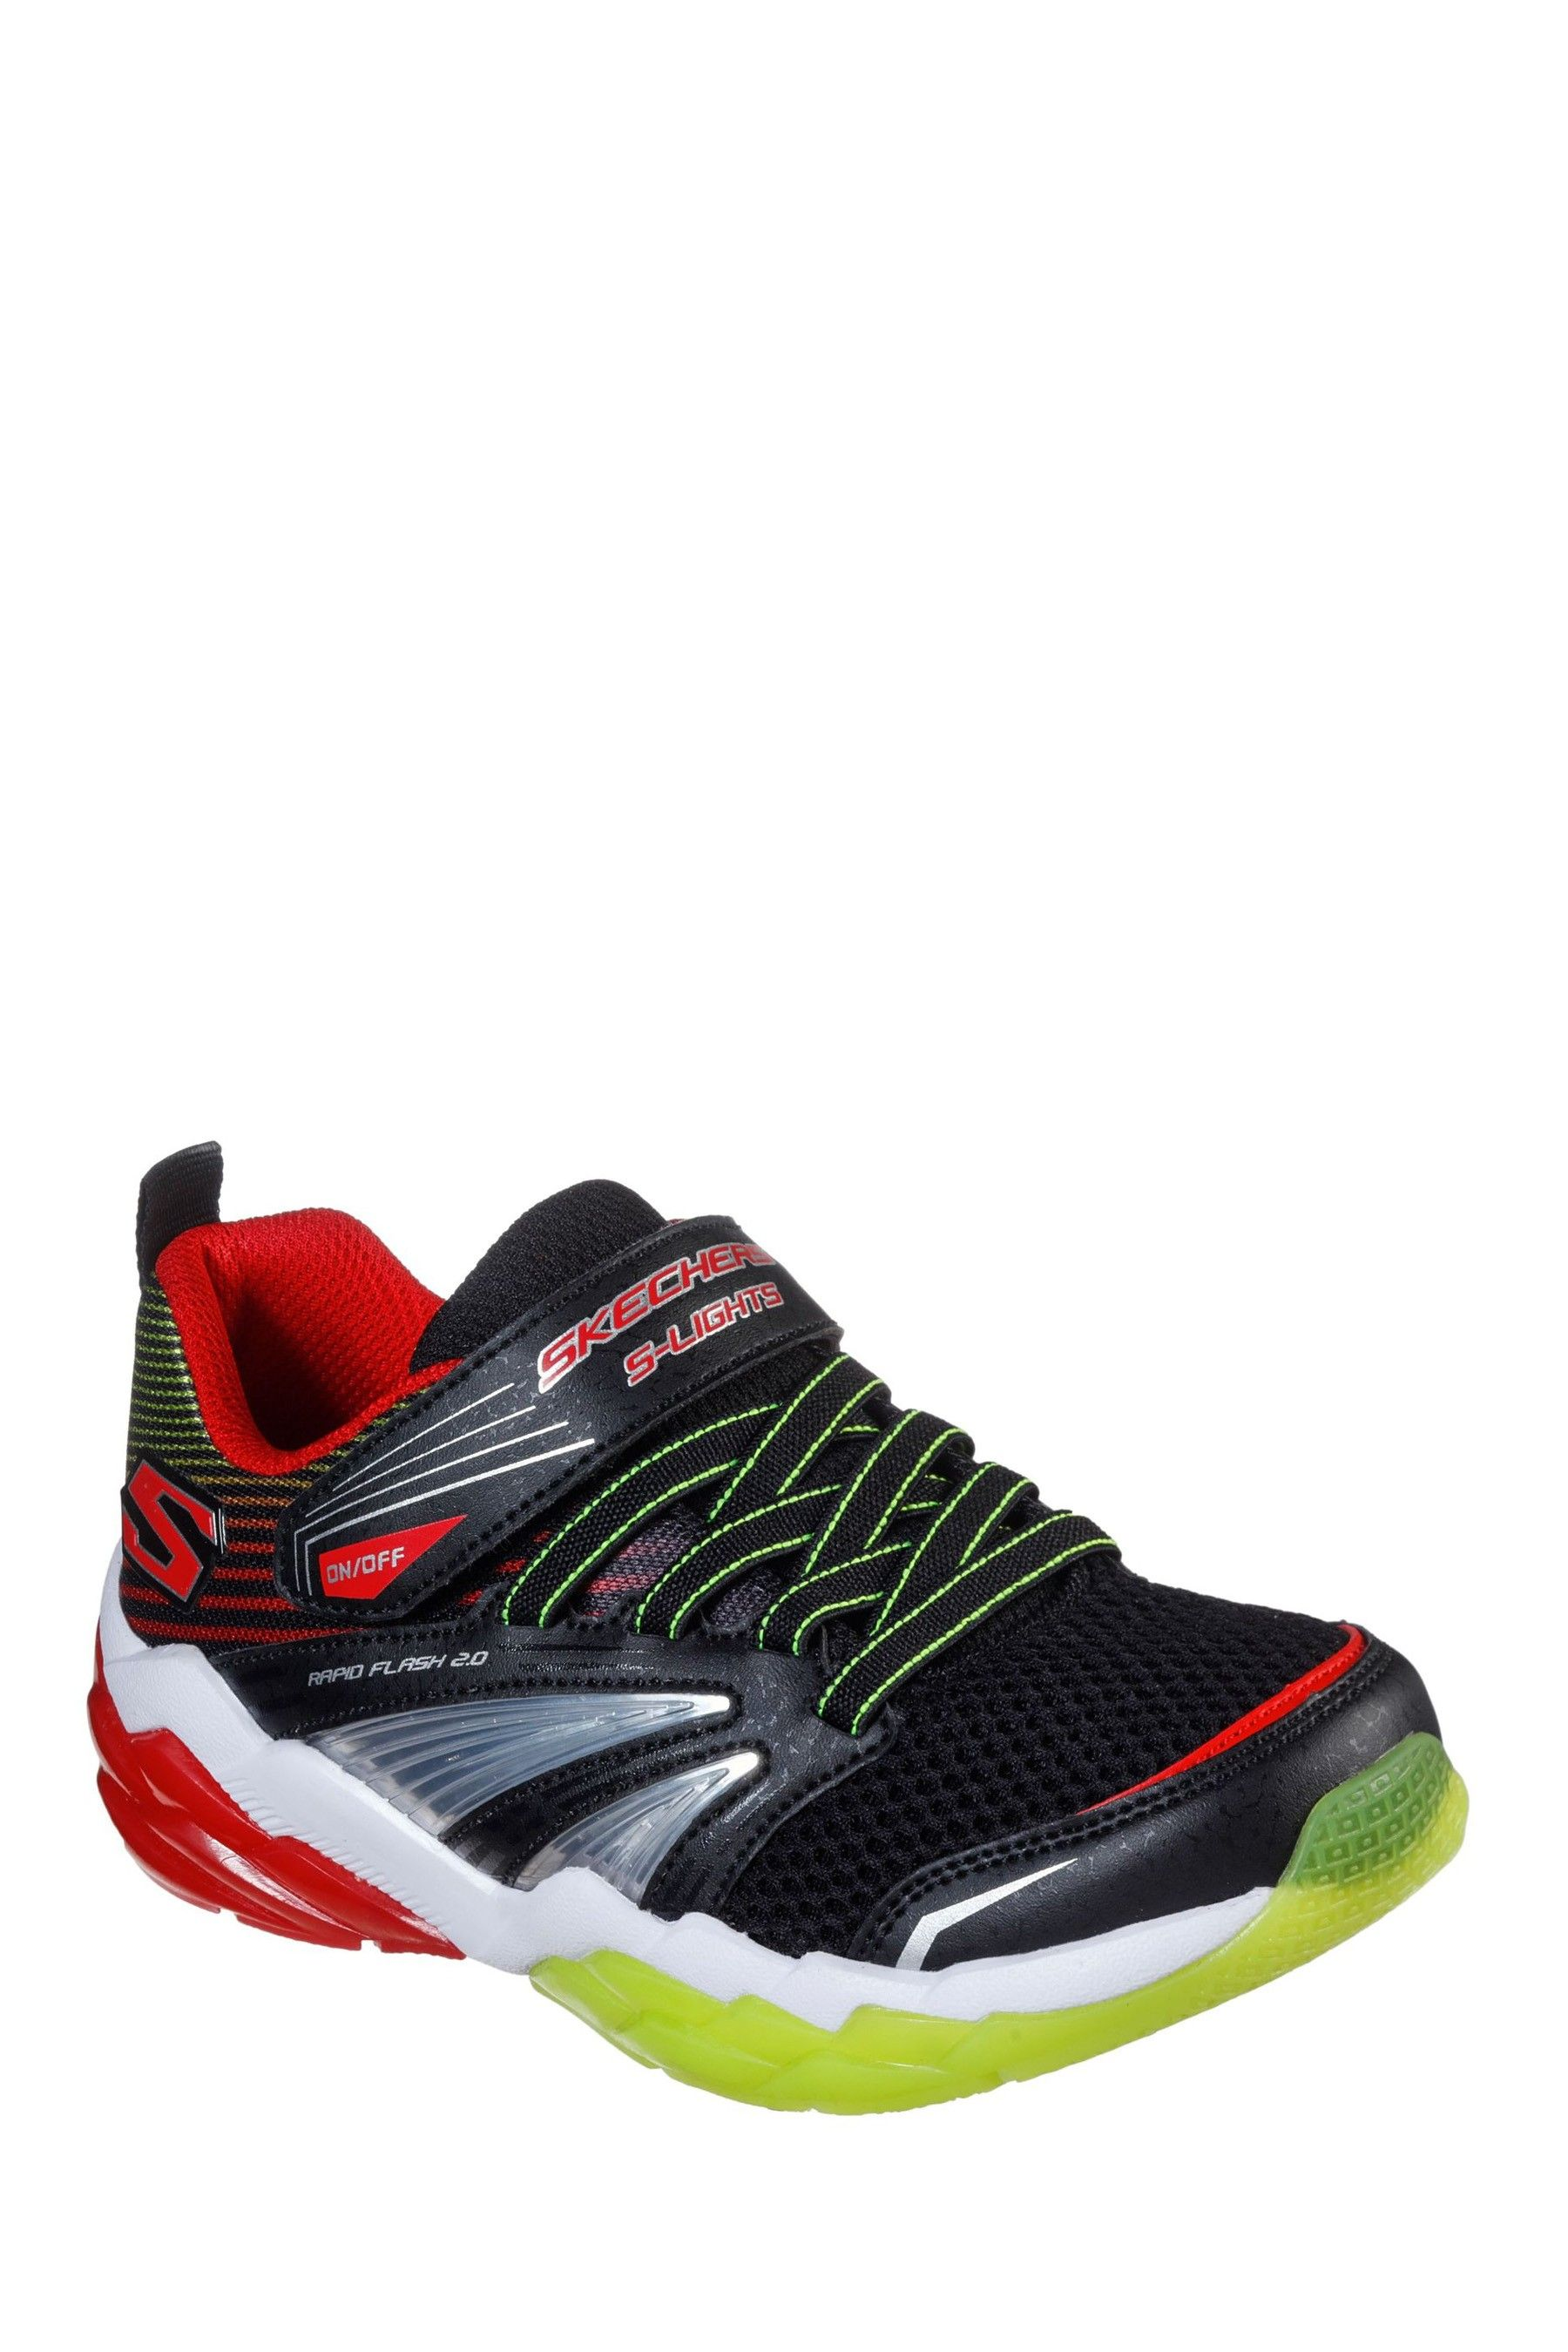 Skechers Rapid Flash 2 0 Trainers Skechers Trainers